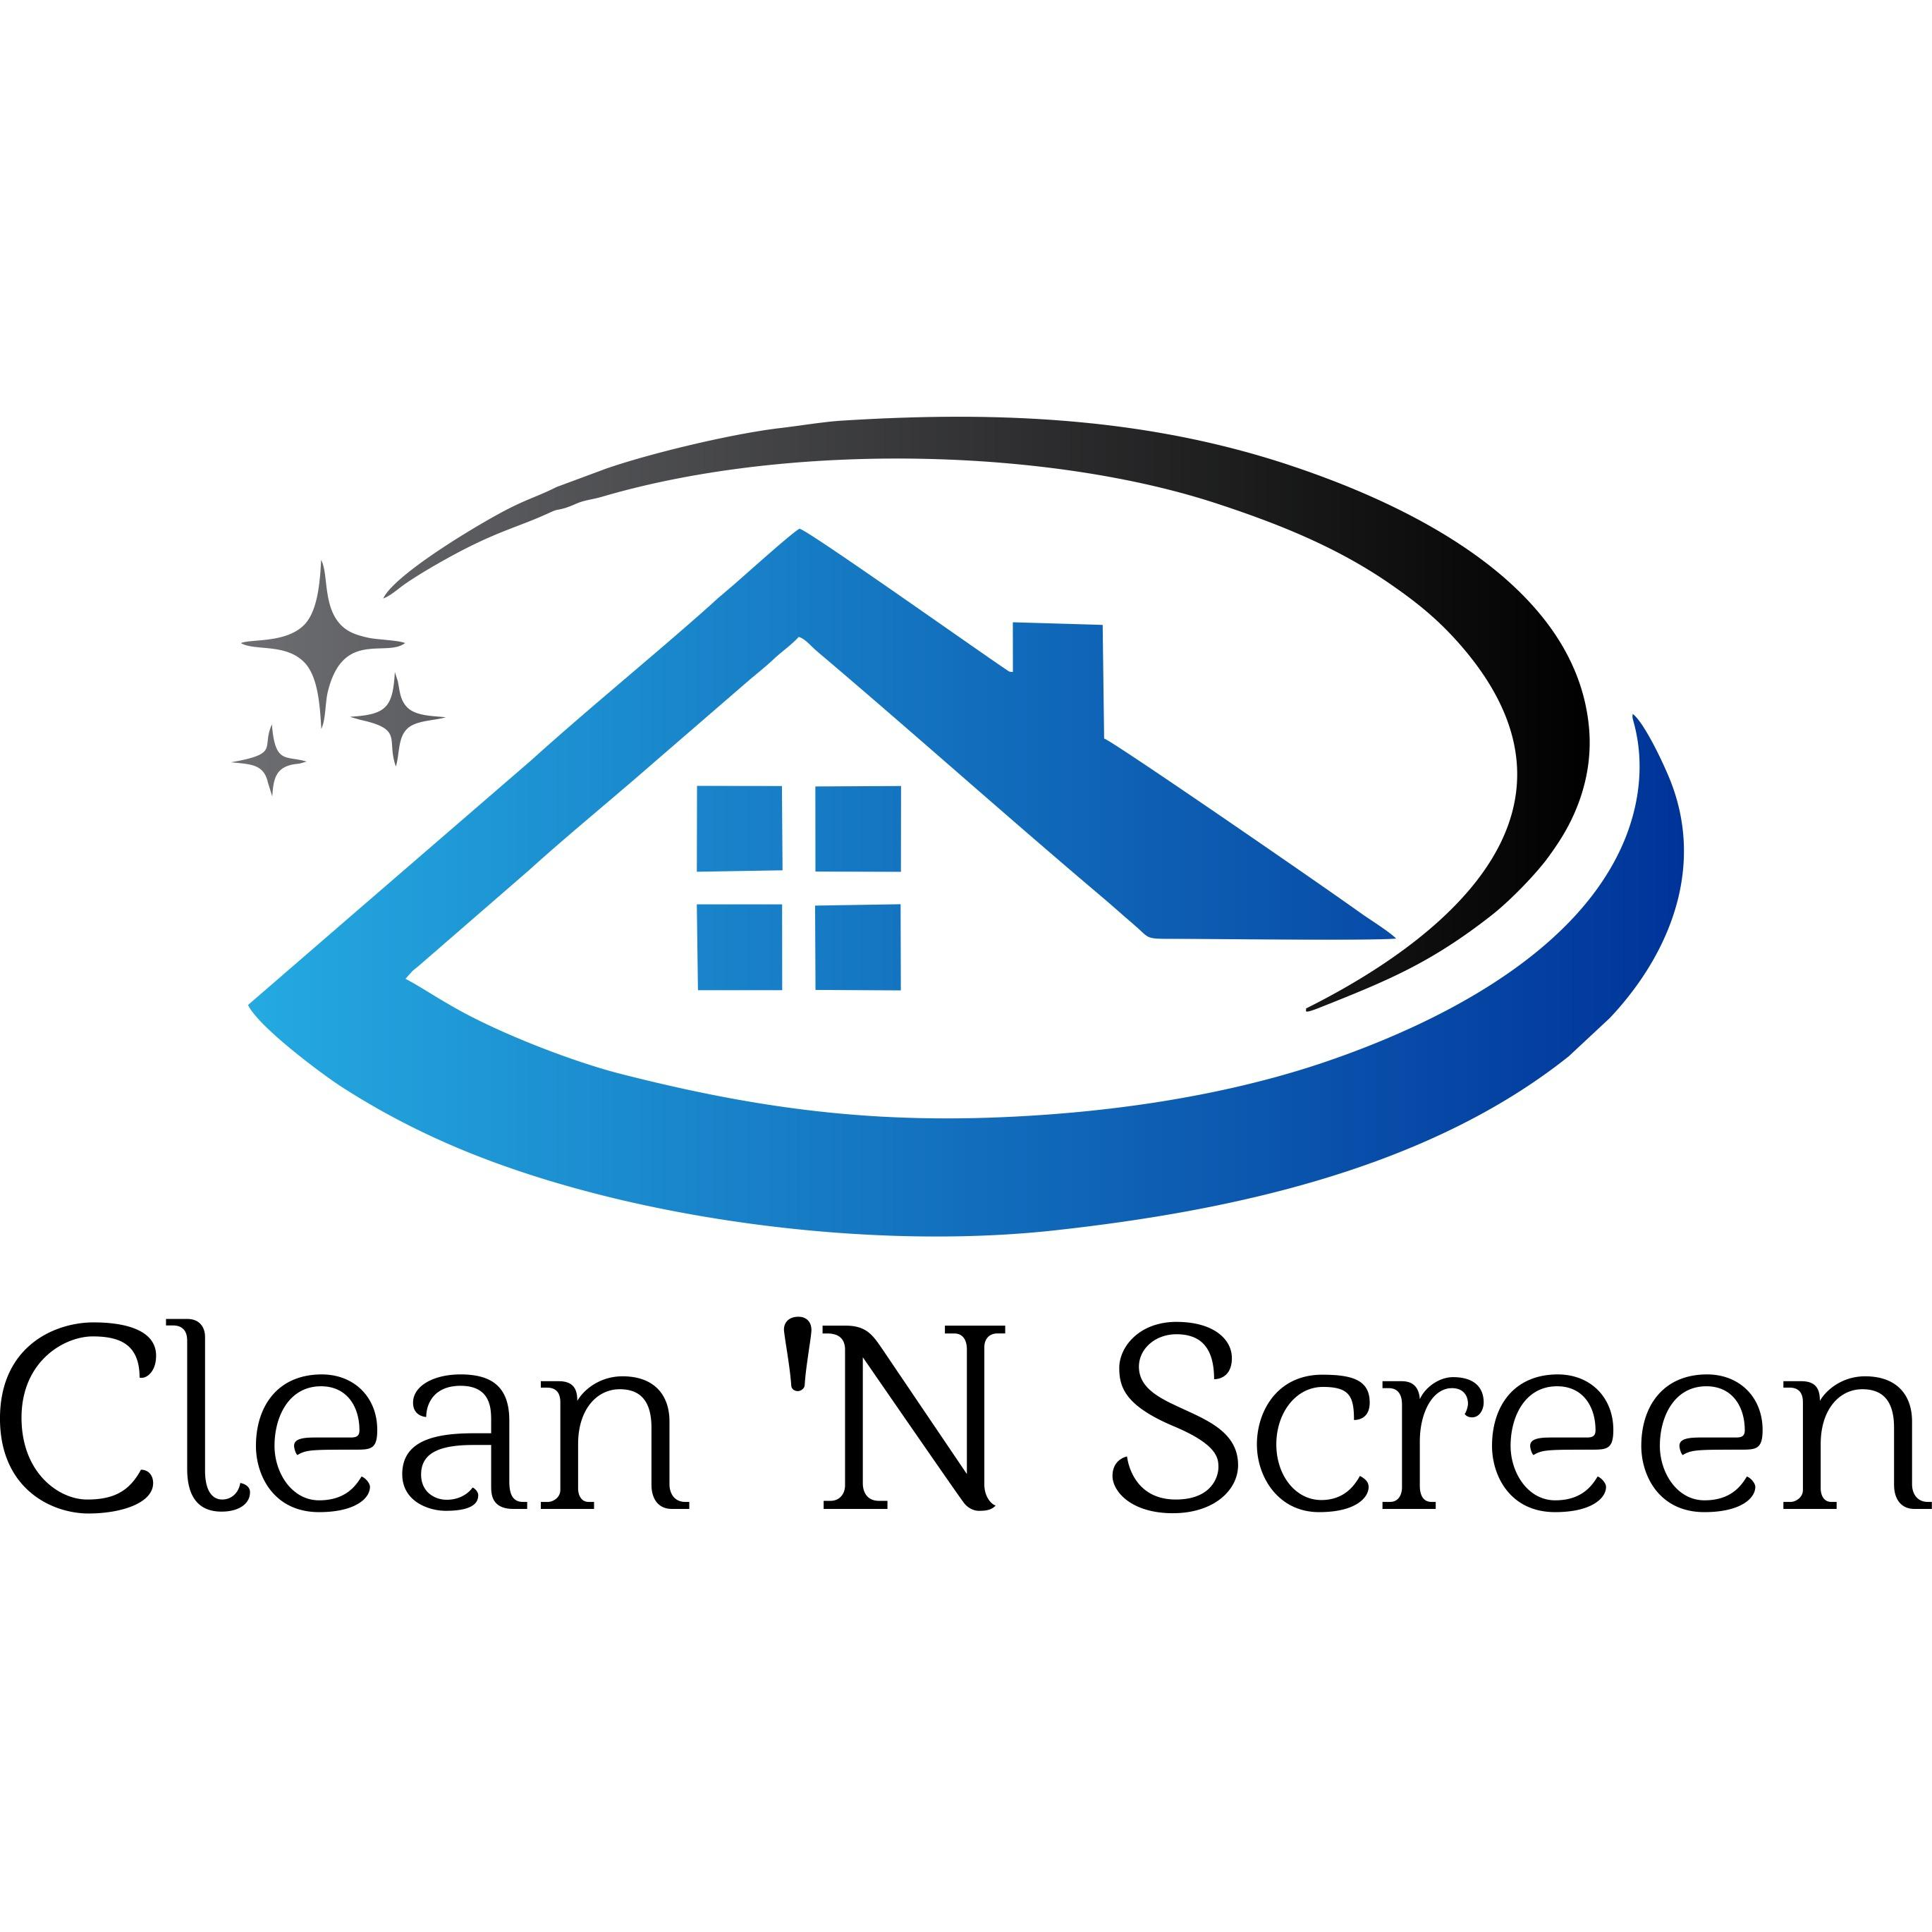 Clean 'N Screen - Crystal Lake